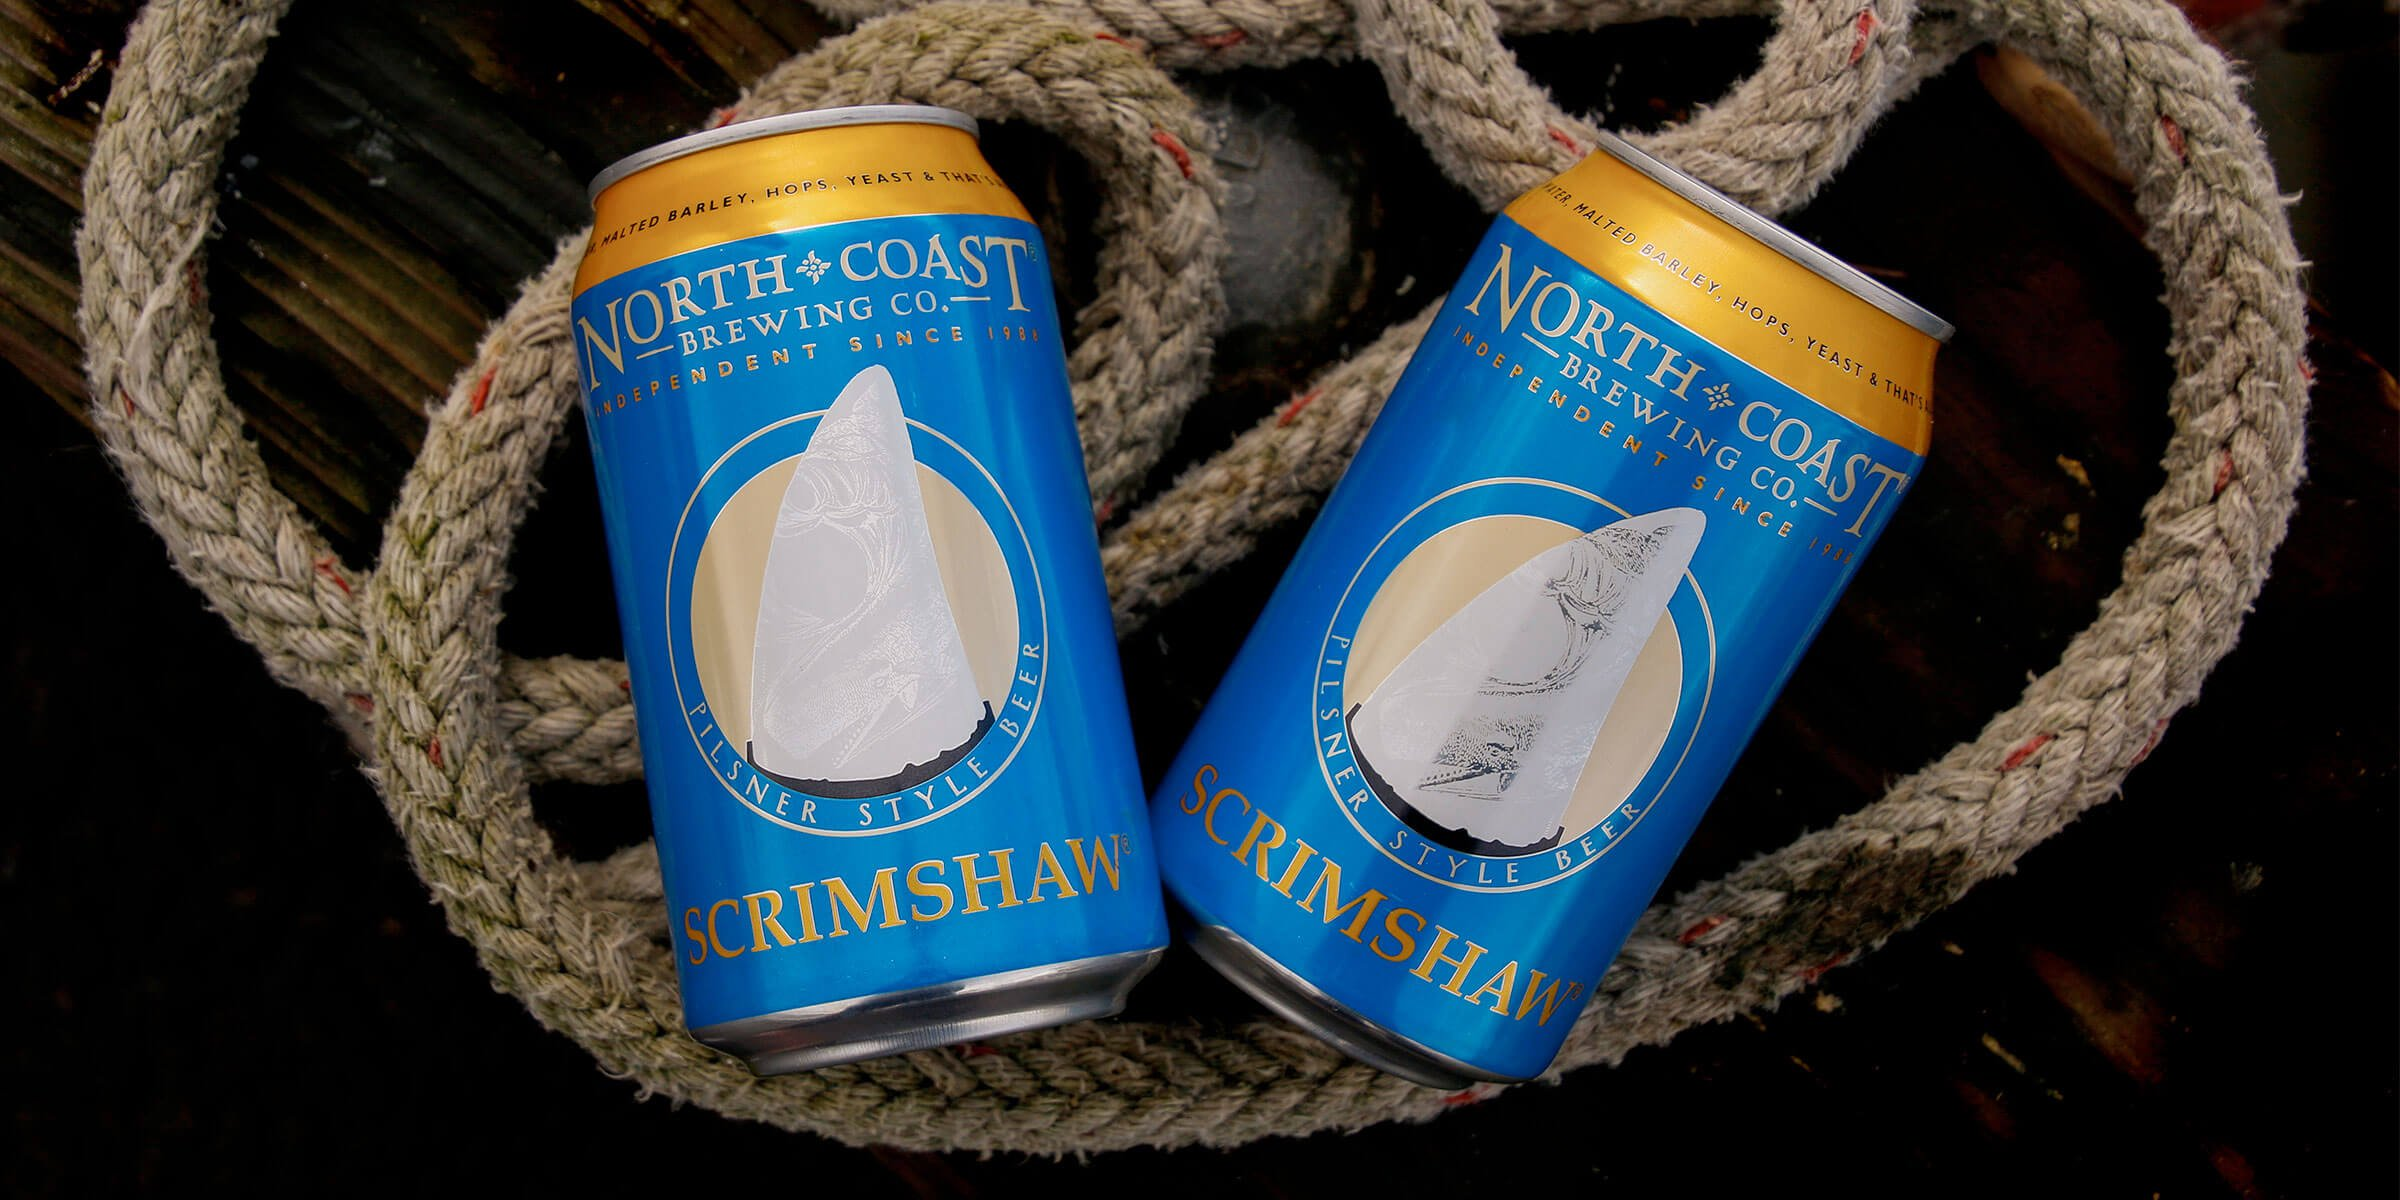 North Coast Brewing Co. released its first beer can of its best-selling pilsner, Scrimshaw, for distribution throughout California and other places to come.